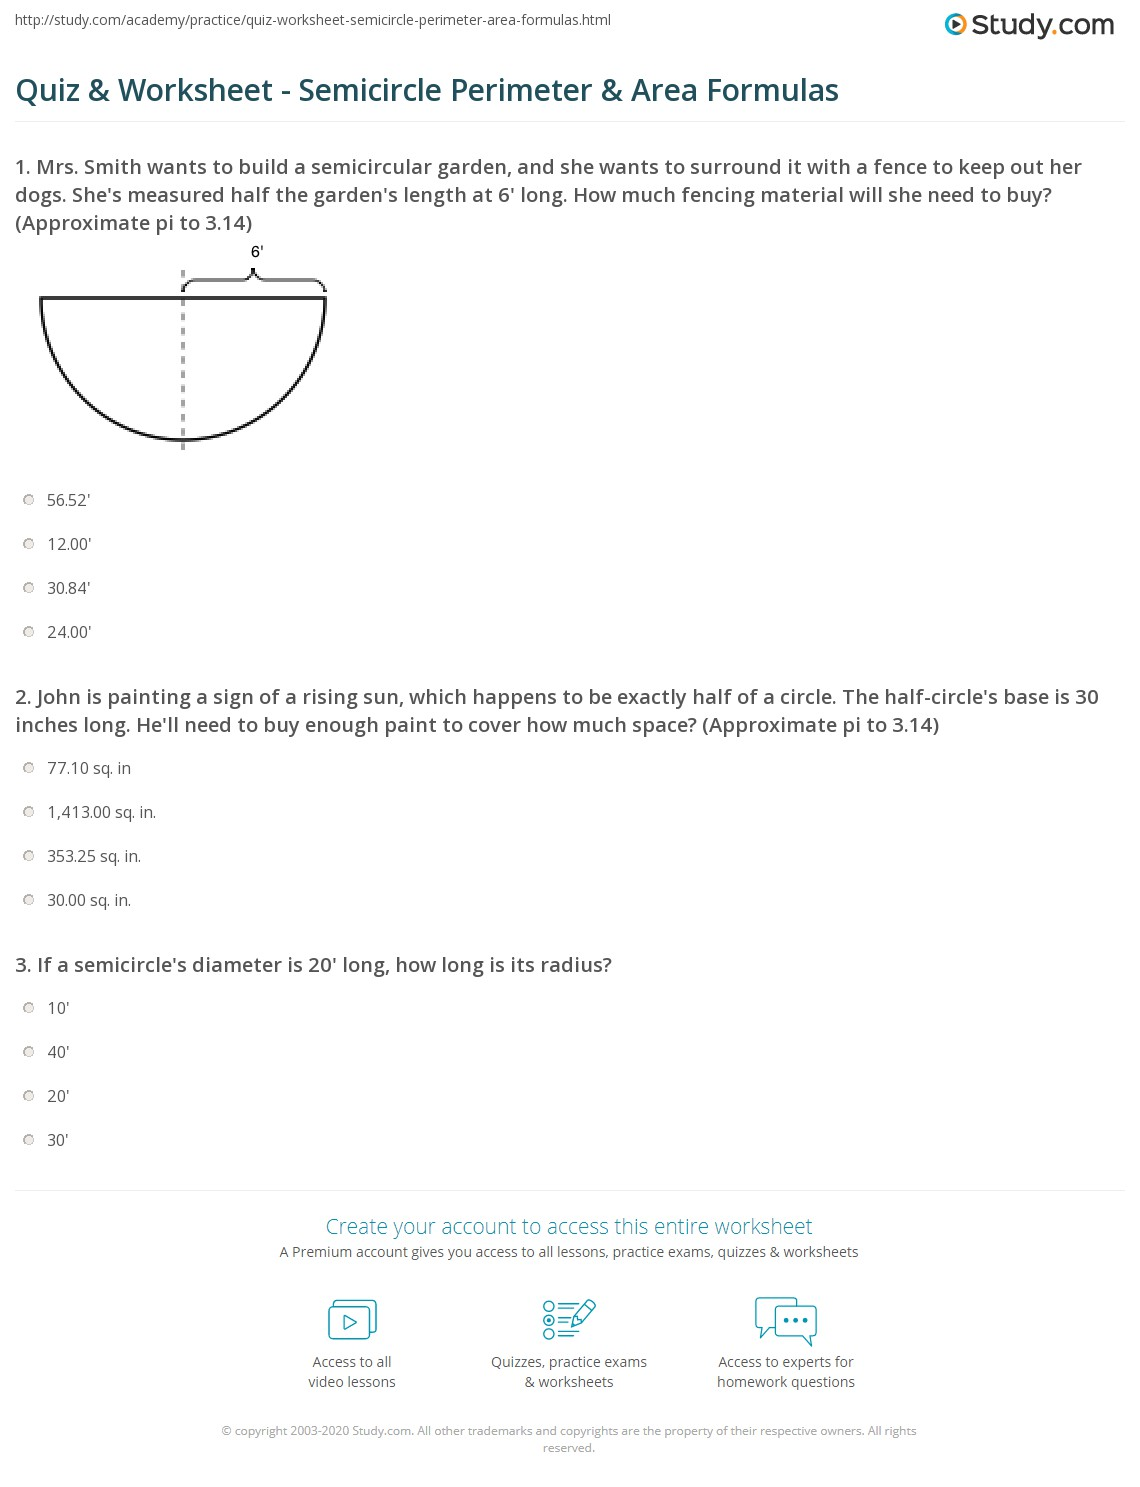 Worksheet Circumference And Area Of A Circle Worksheet